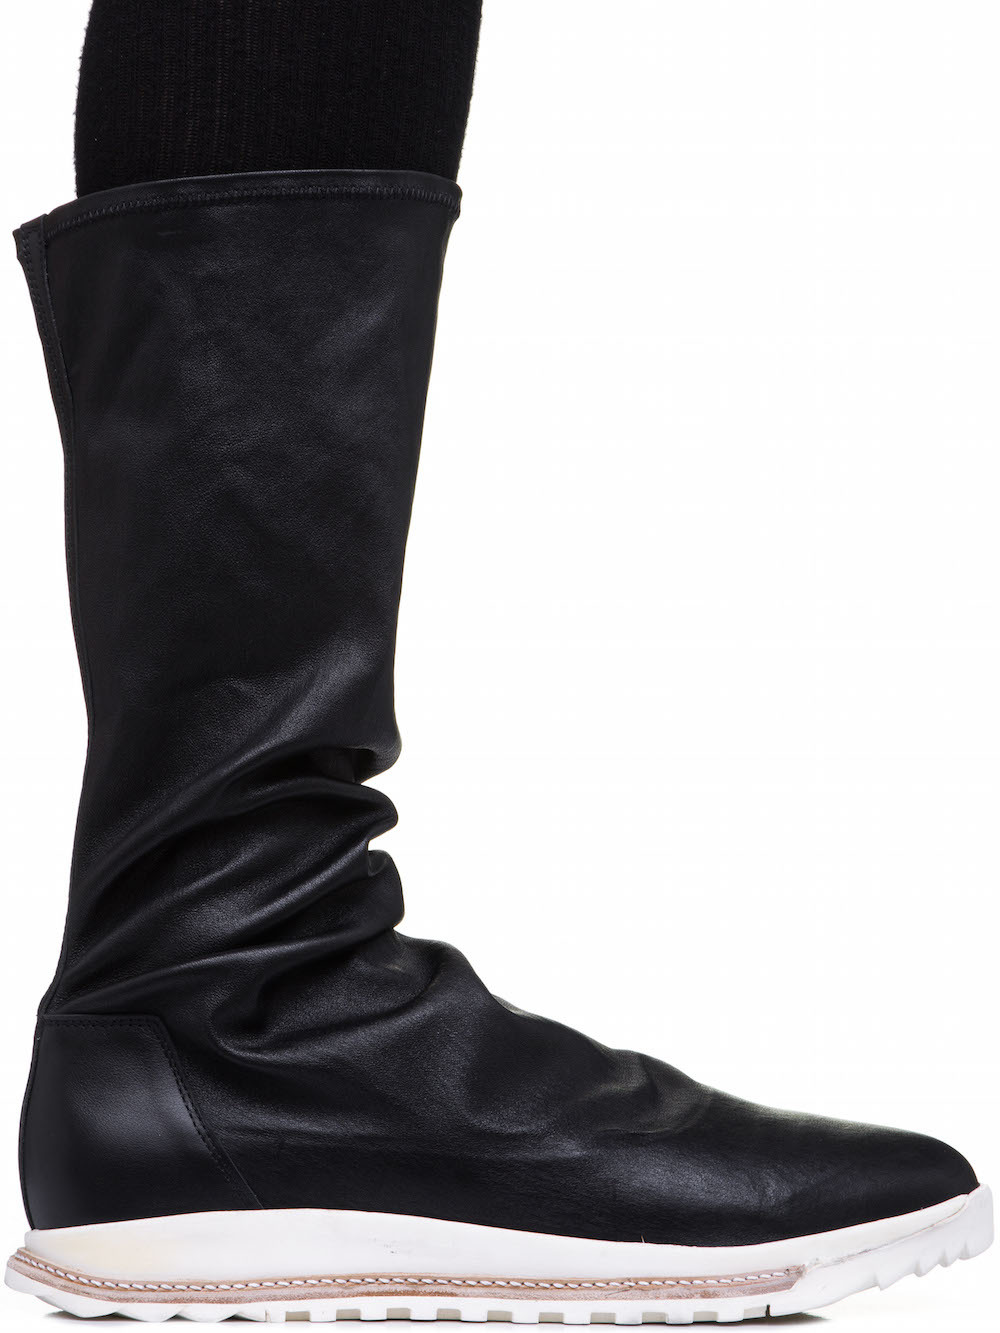 Hood Off-The-Runway Dirt Grafton Sock shoes - Black Rick Owens Sale Outlet Locations Really Cheap Shoes Online Sale Pay With Visa 3qyuqY